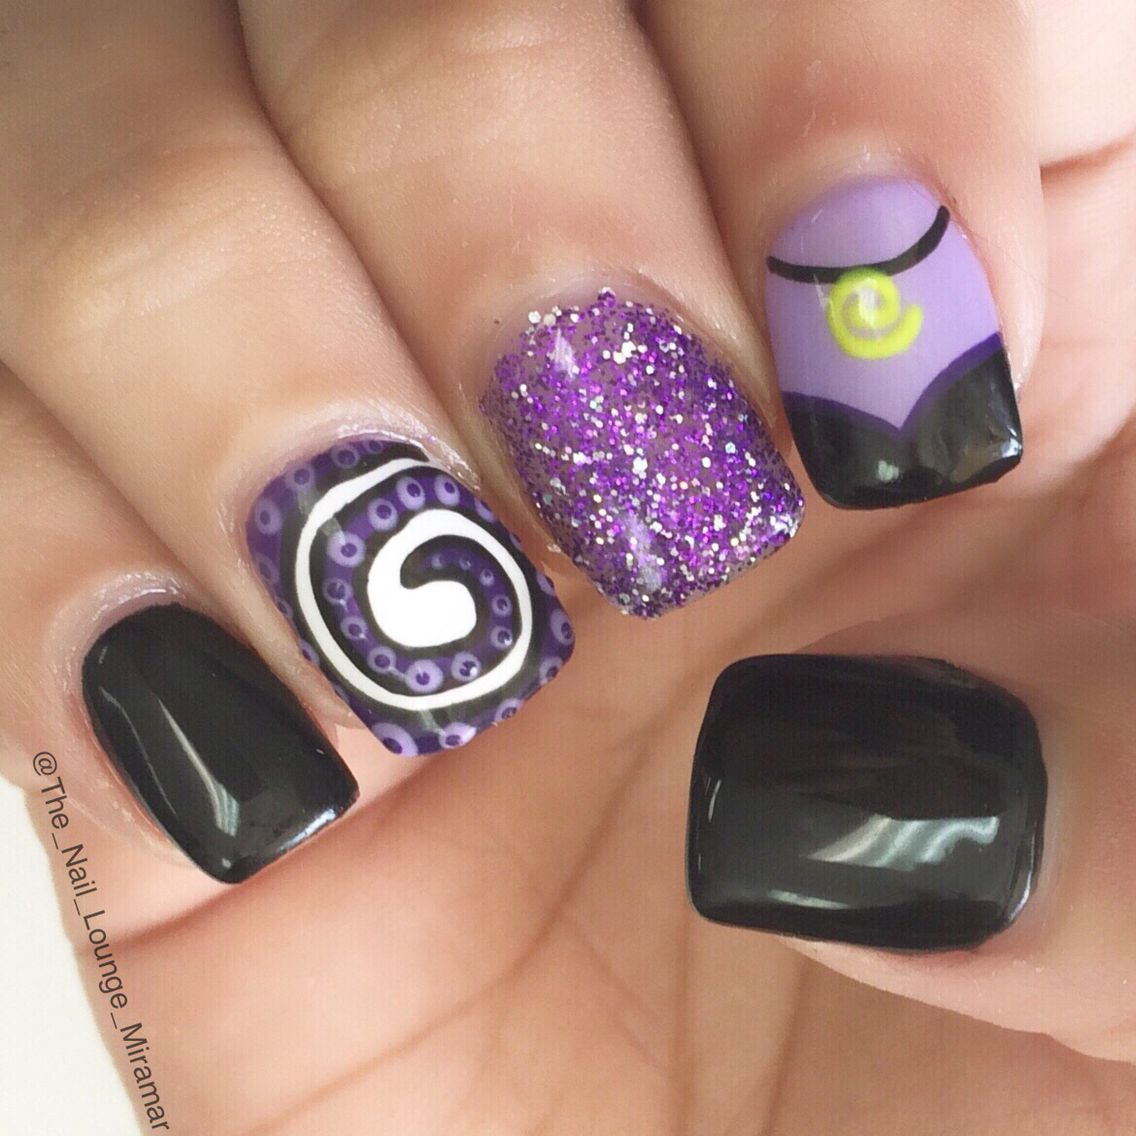 Disney\'s Ursula nail art design | When You Wish Upon A Star ...